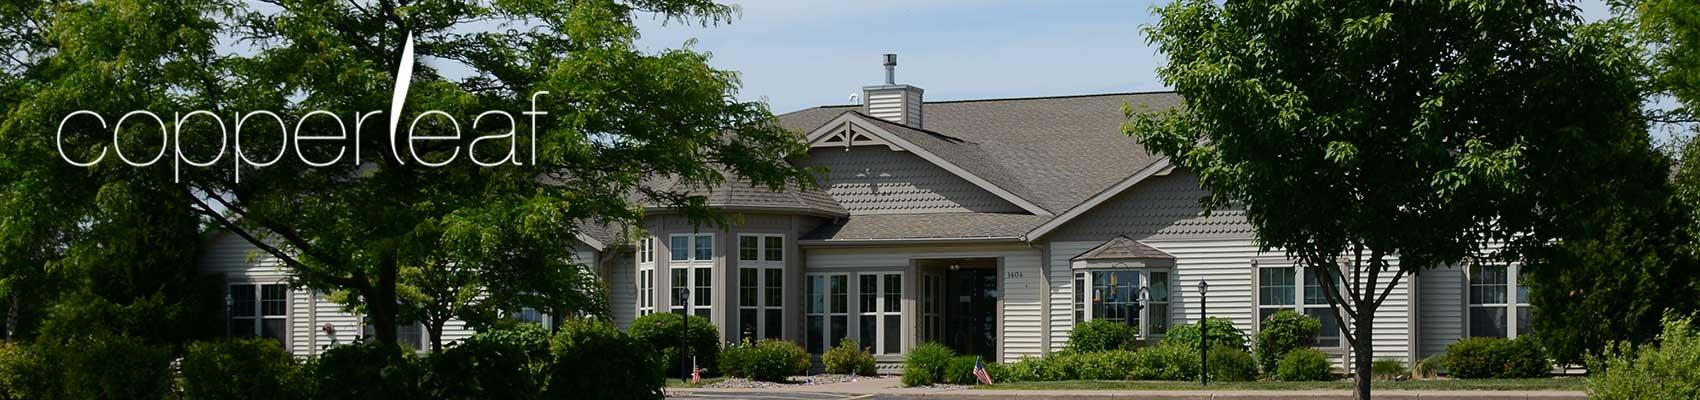 assisted living facilities in Rangeline Wisconsin Marathon County